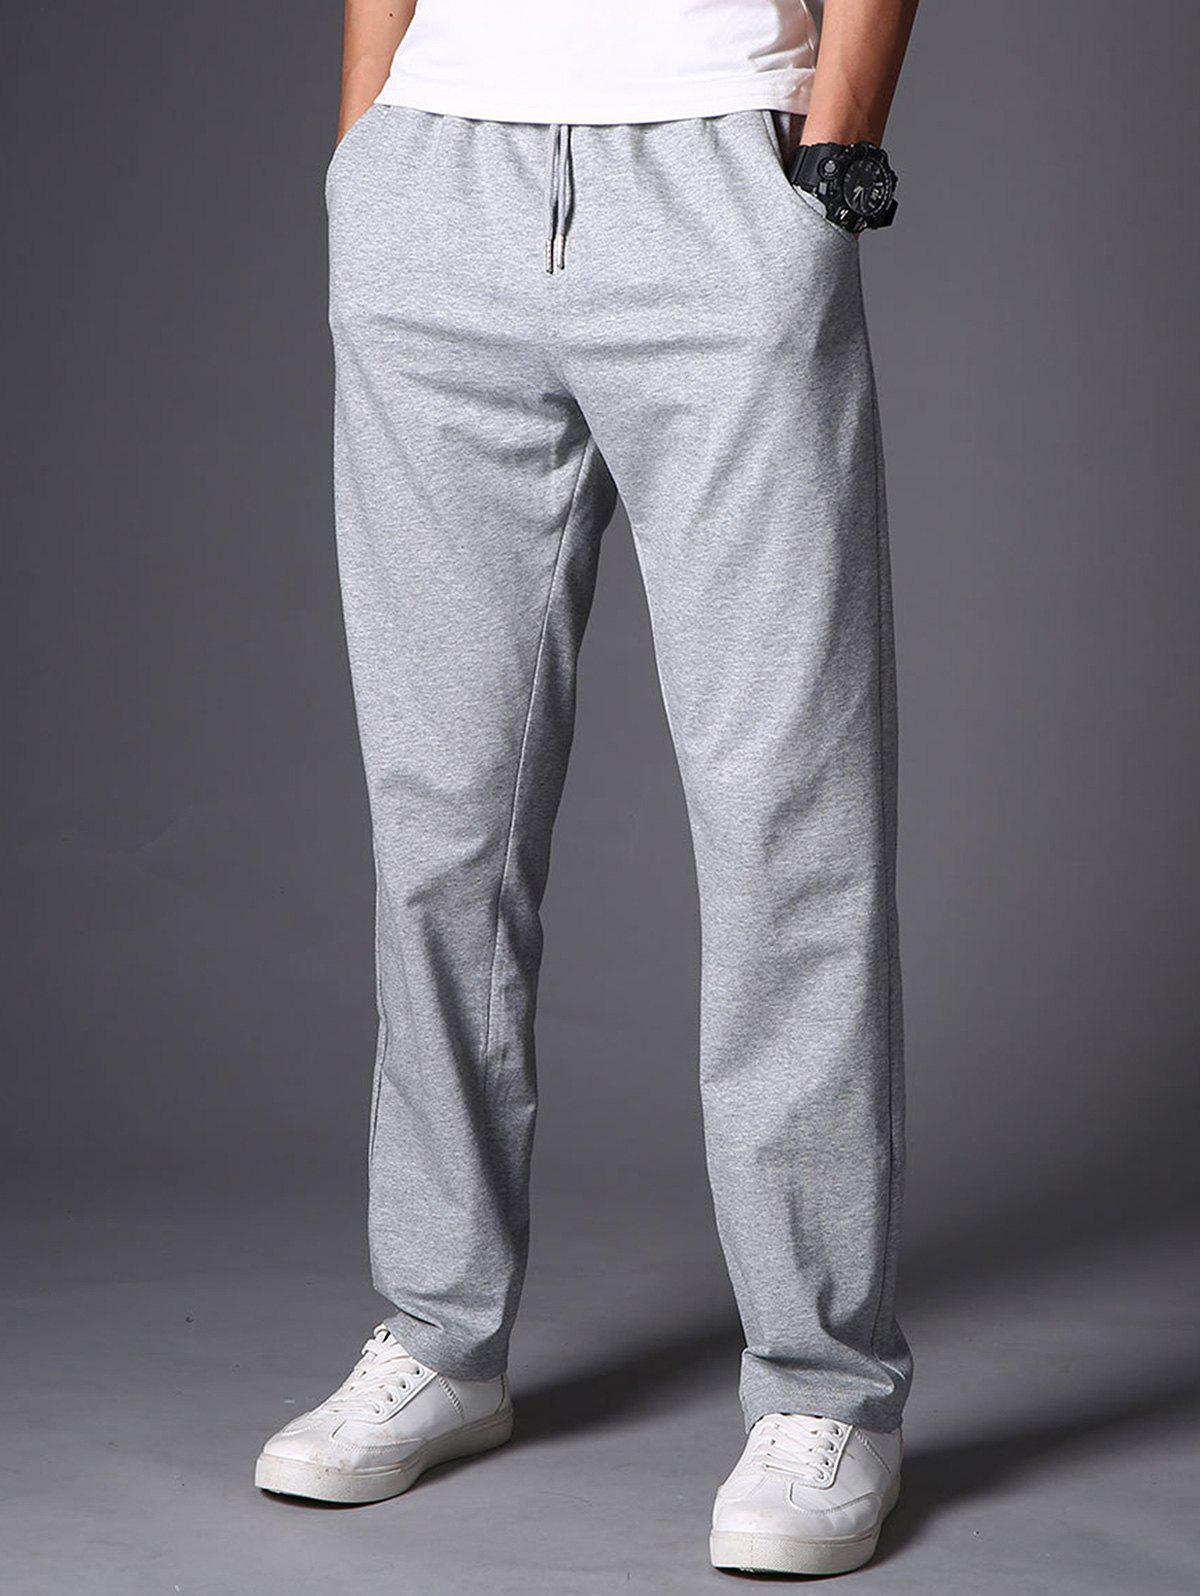 Casual Drawstring Straight Leg Sweatpants - LIGHT GRAY 4XL